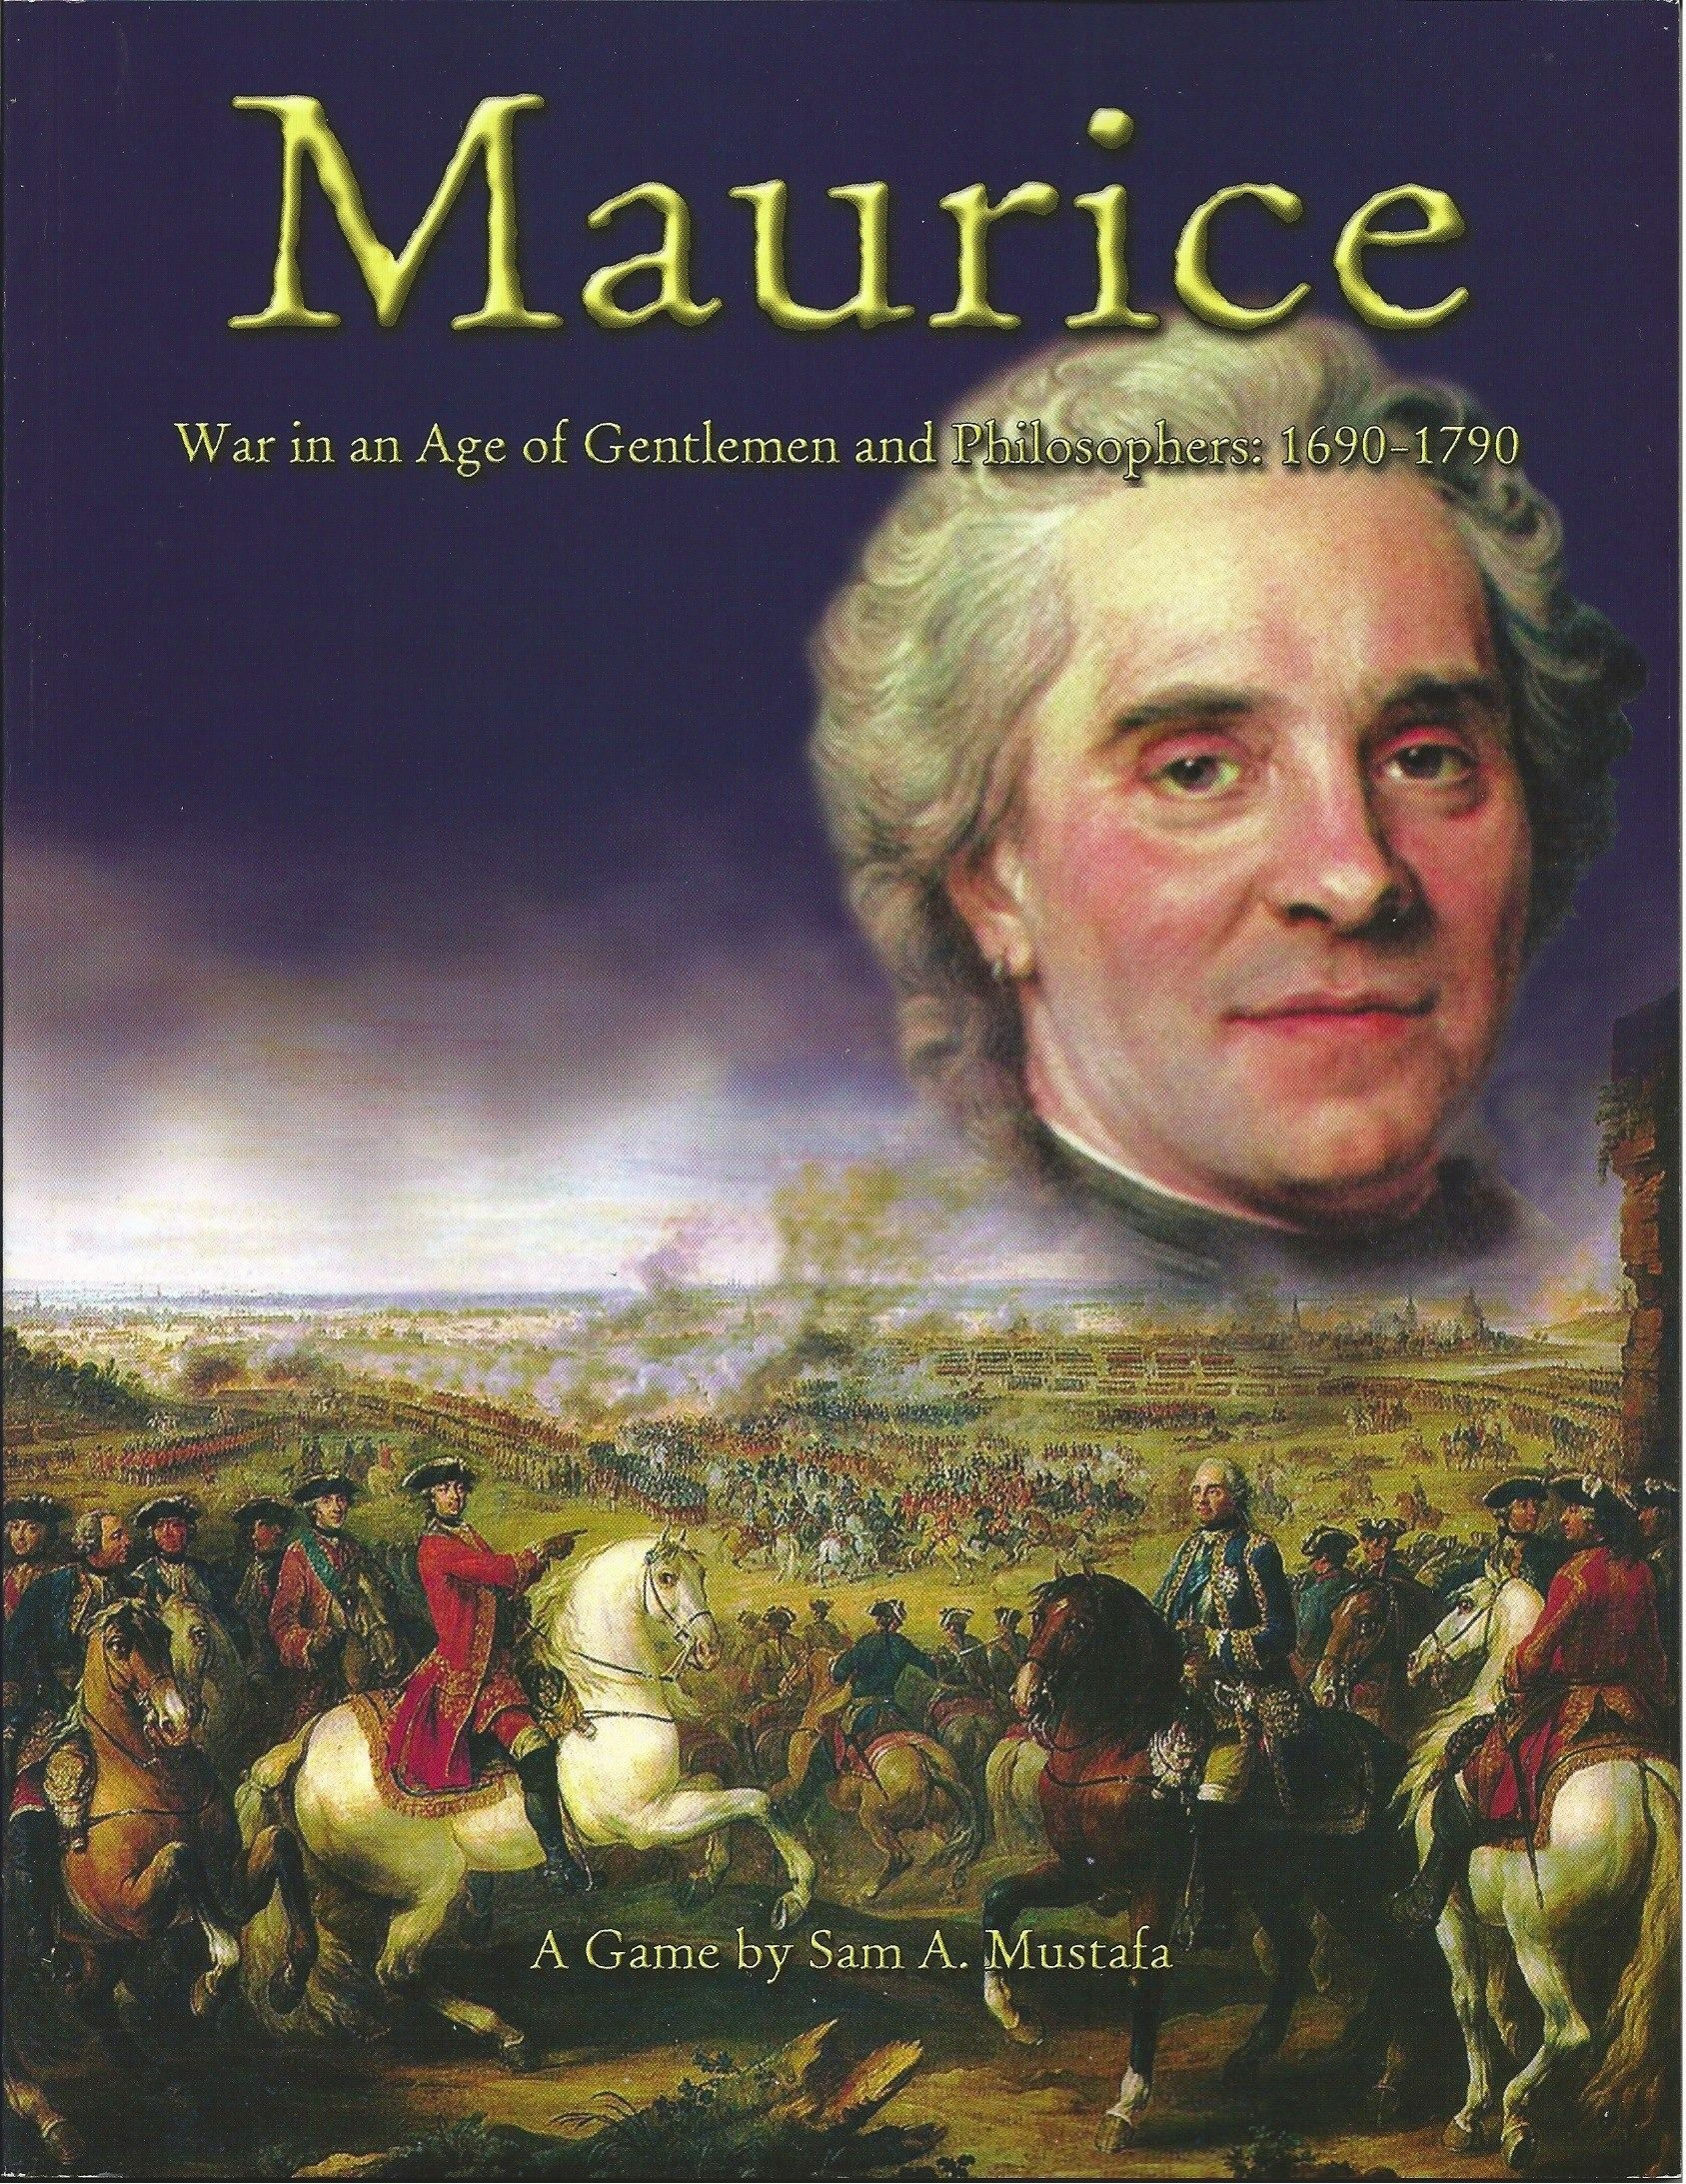 Maurice: War in an Age of Gentlemen and Philosophers – 1690-1790